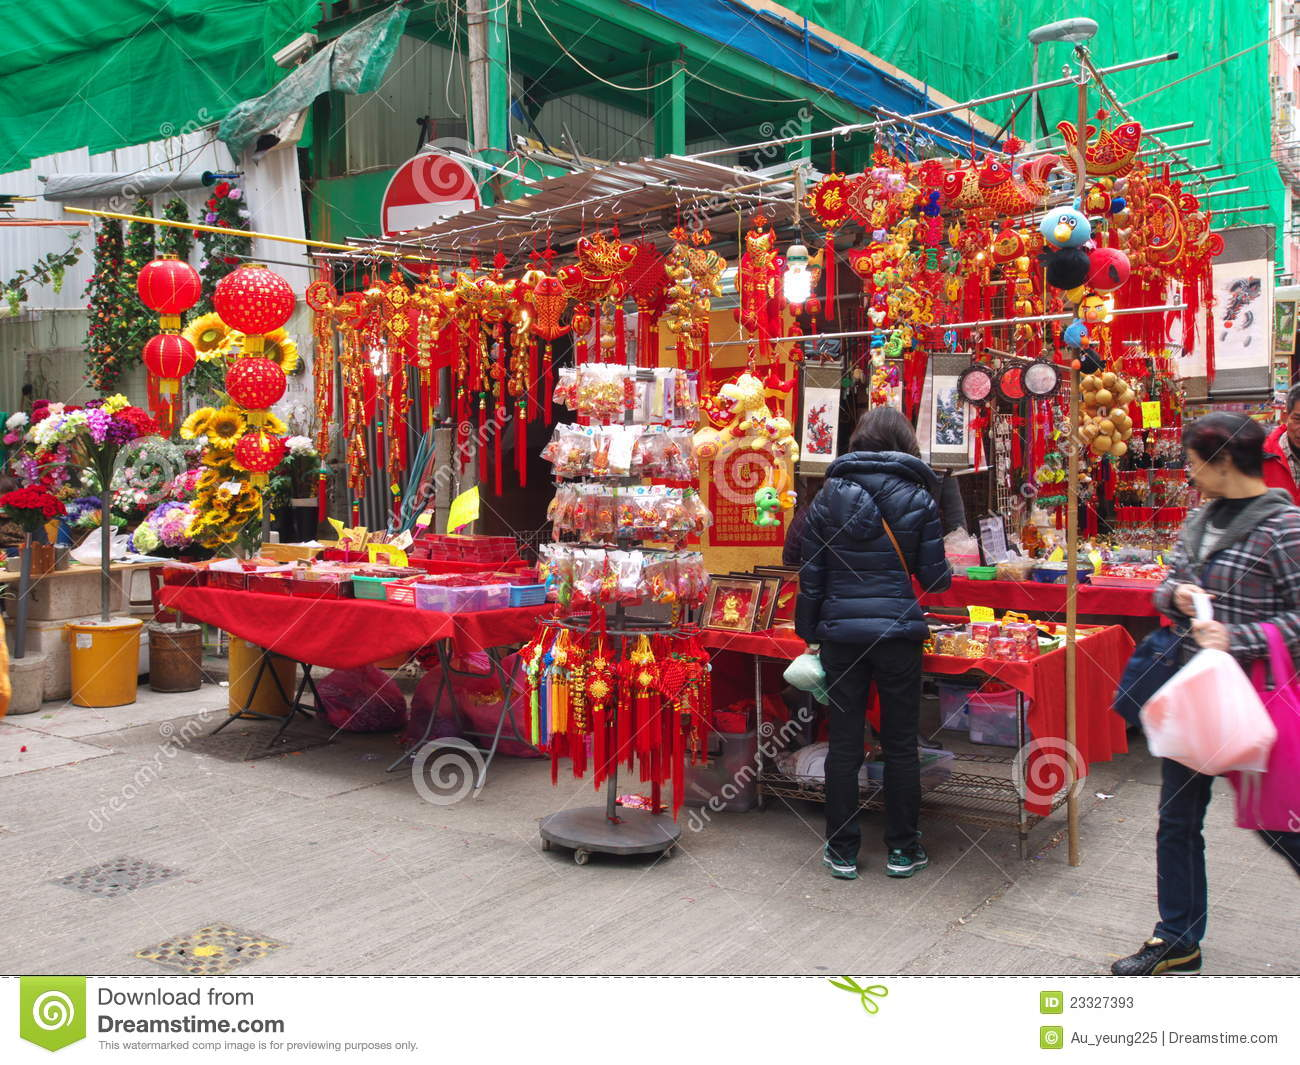 Marché en an neuf lunaire chinois